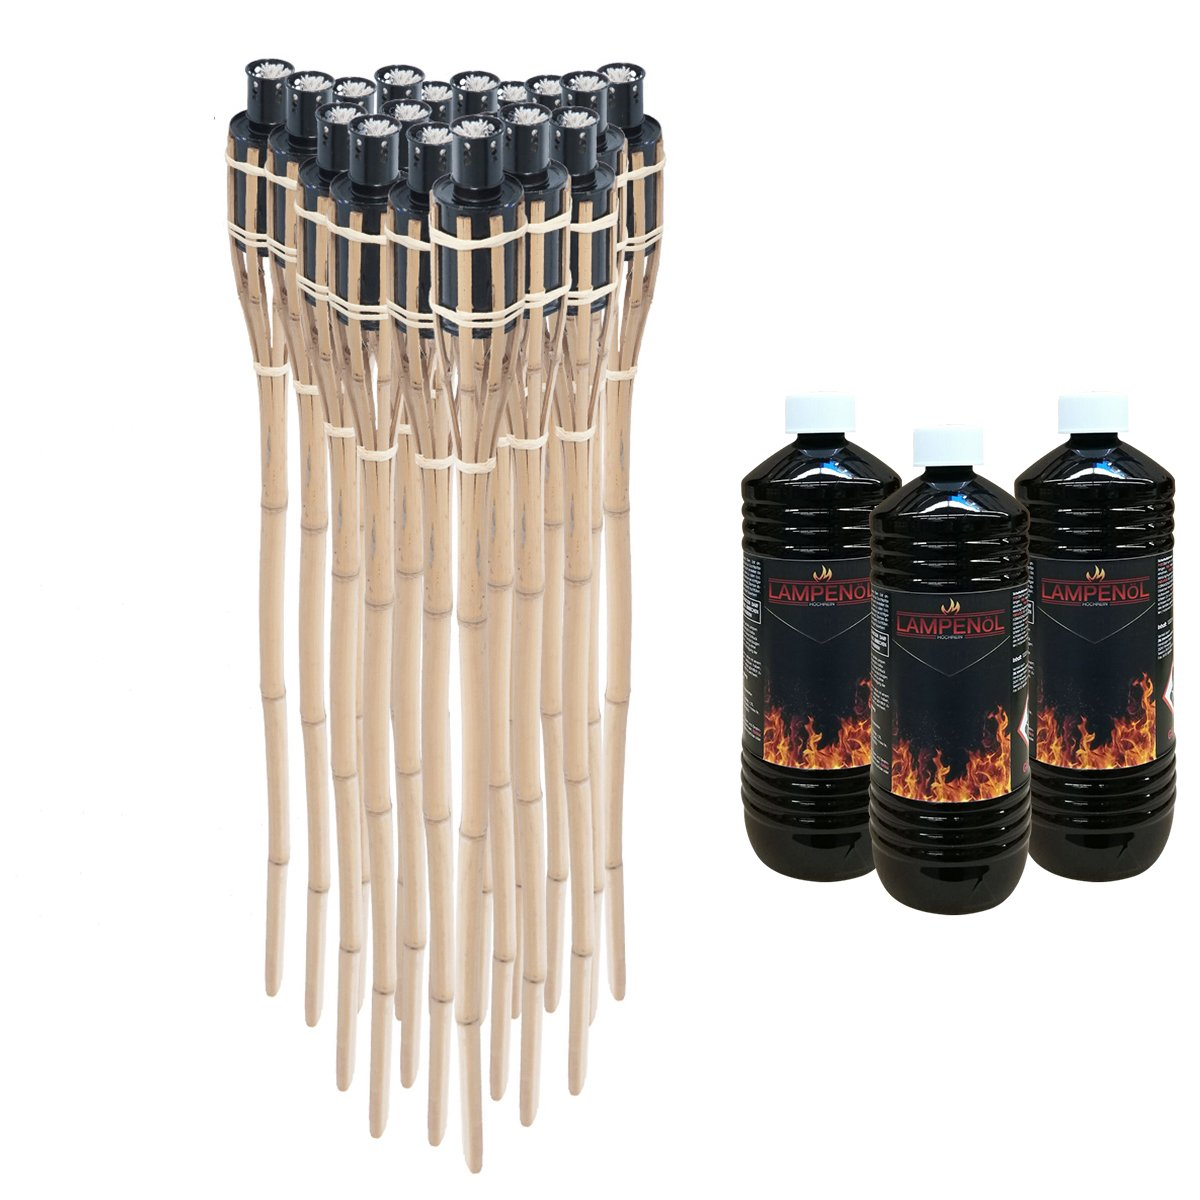 DXP 18 x Natural Handmade Bamboo Garden Tiki Torches - Oil Burning - 90 Centimeter Resuable Oil Latern for Garden Yard Party Decorations New EZH-01